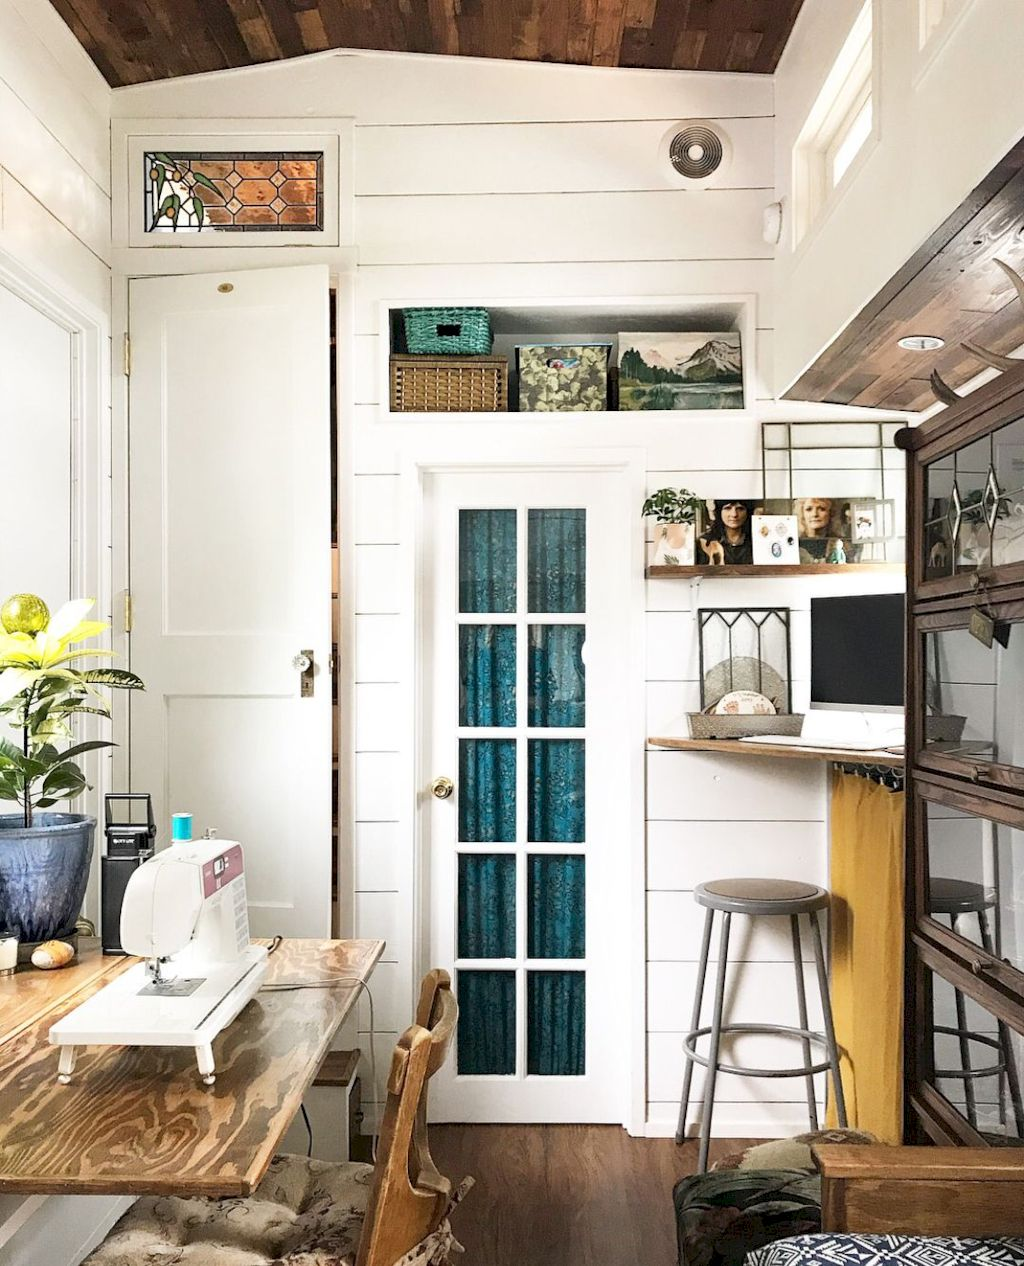 Coastal chic decoration with nautical accessories showing a fresh look in cool beach house styles Image 18